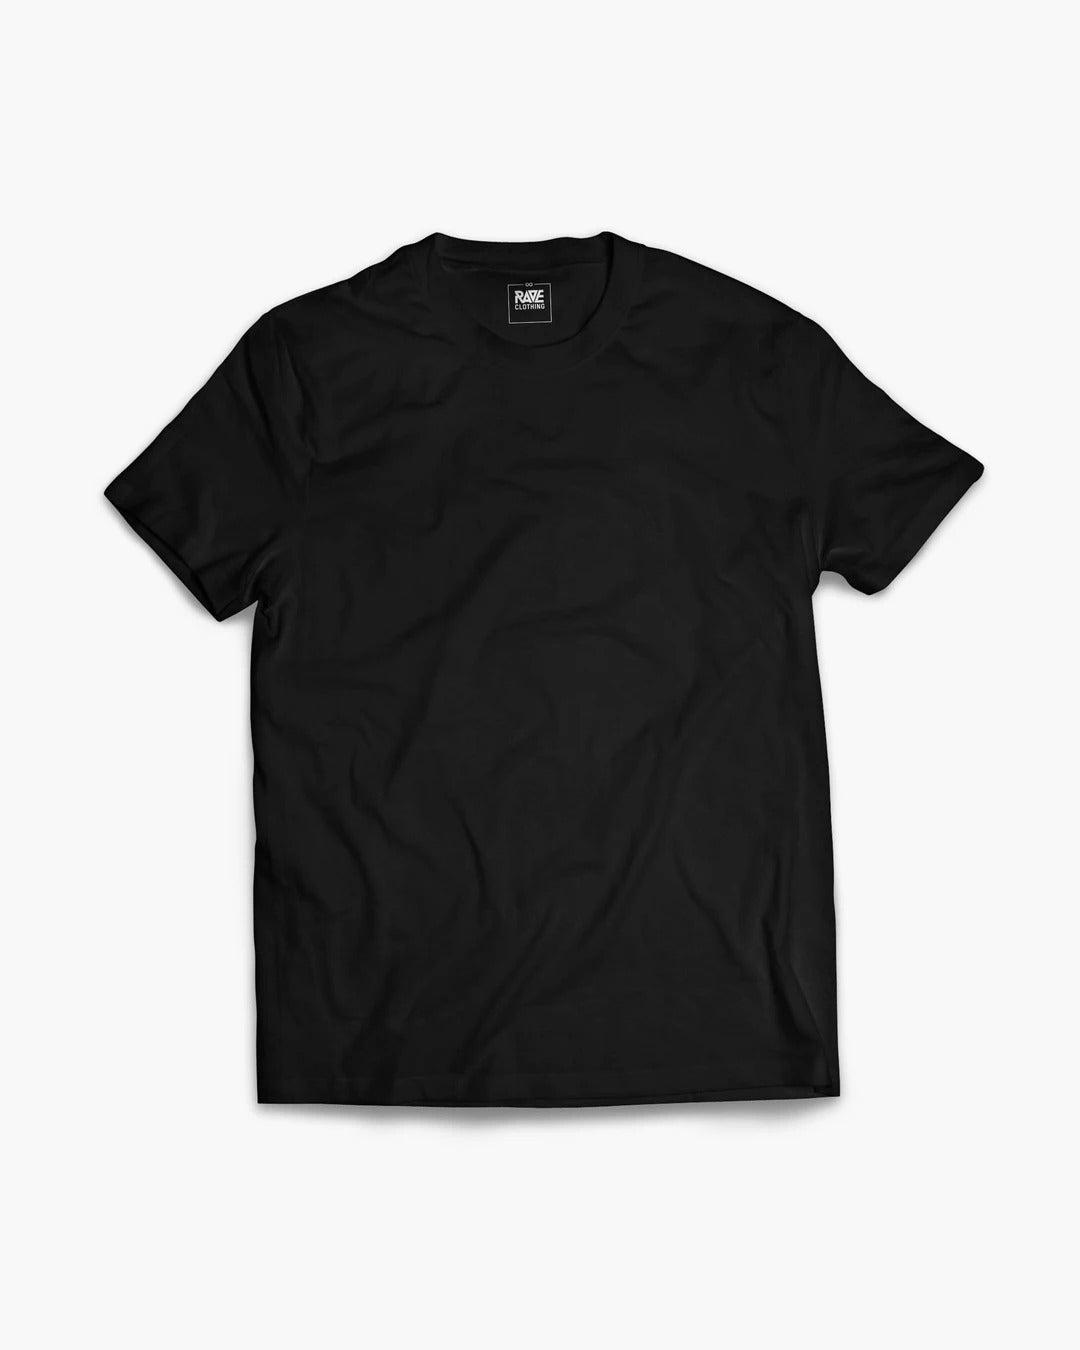 Vanessa Sukowski Crew T-Shirt in black